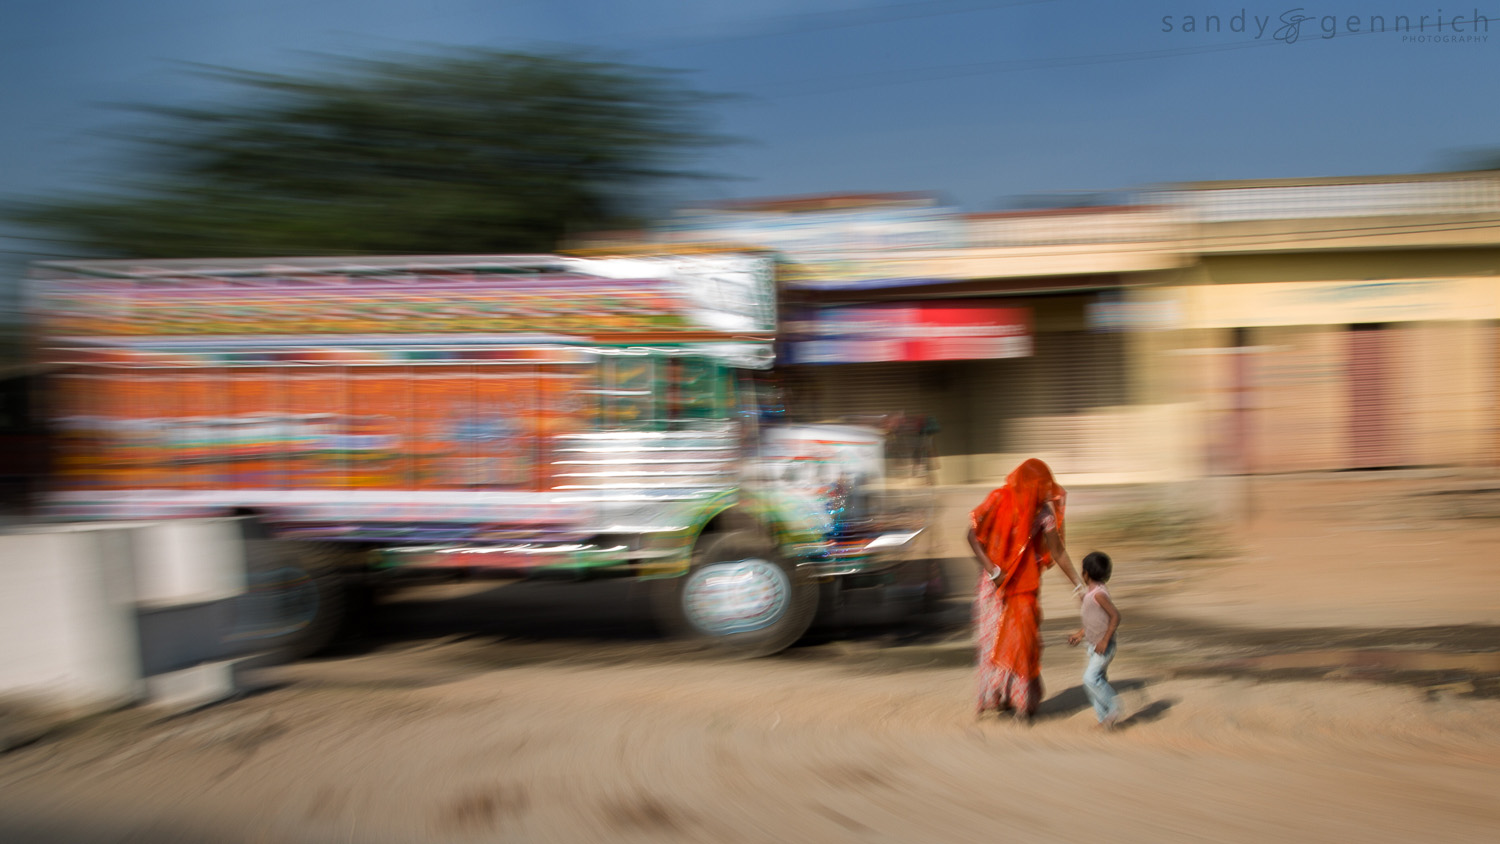 Roadside-India in Motion-Rajastan-India